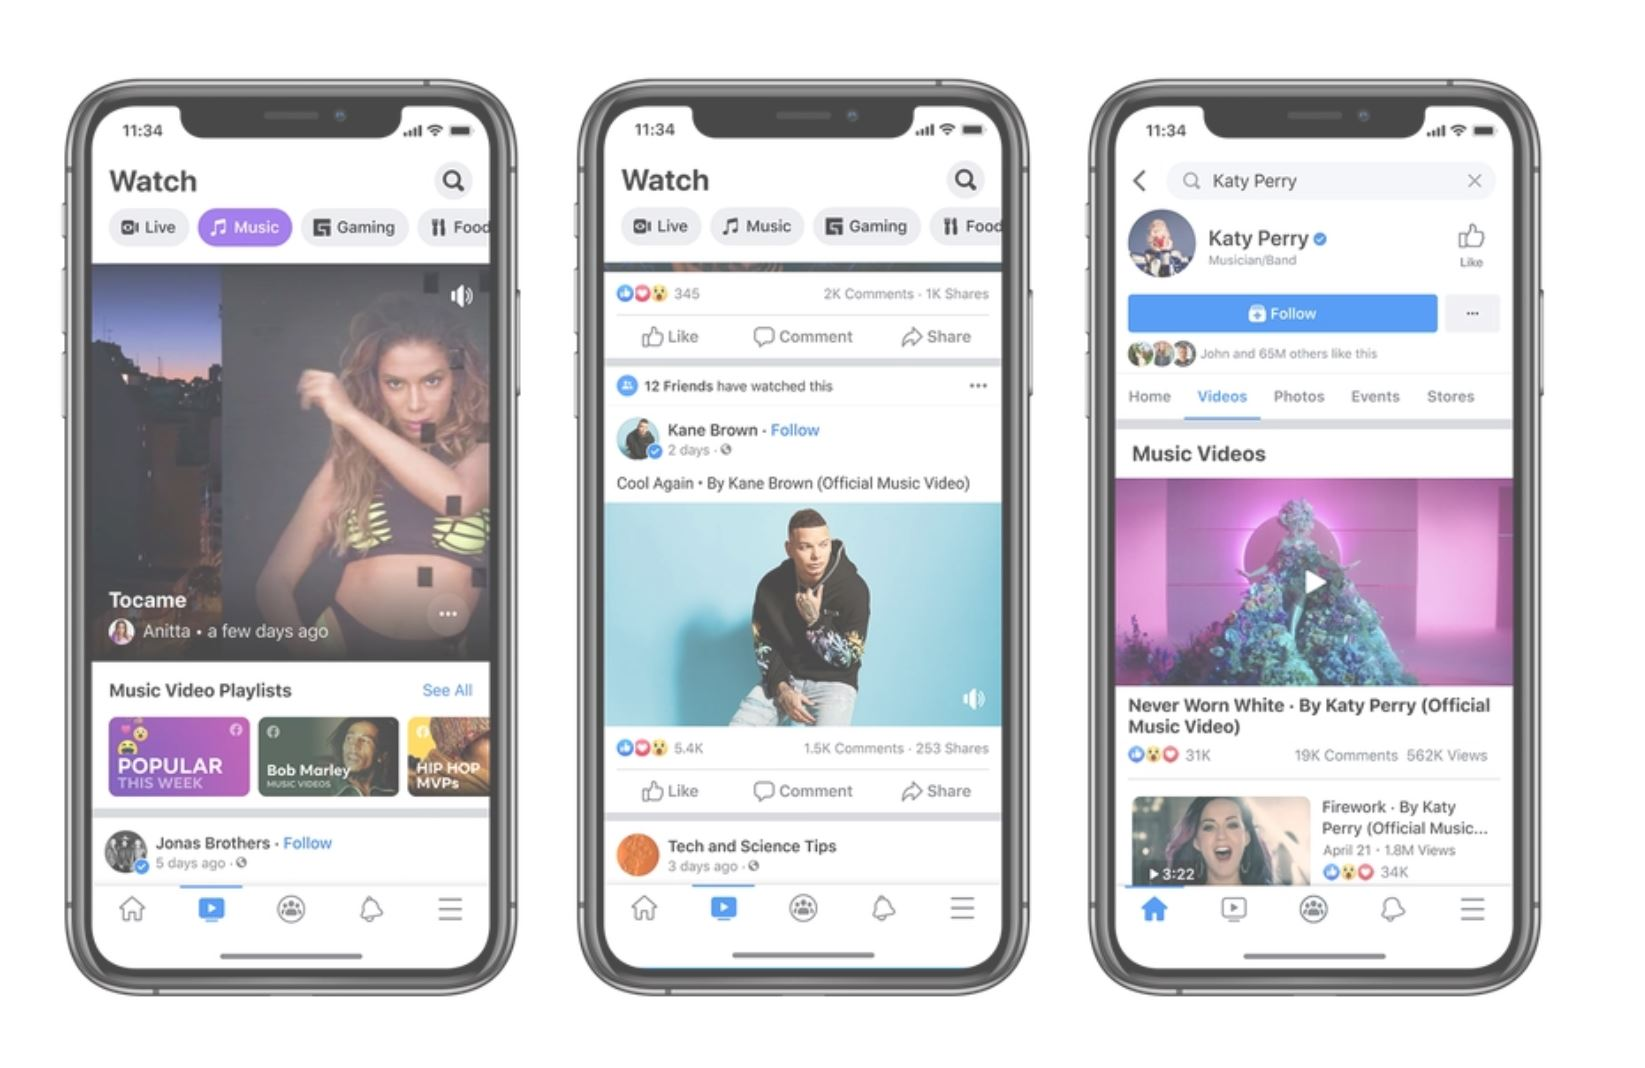 Facebook is bringing official music videos to compete with YouTube